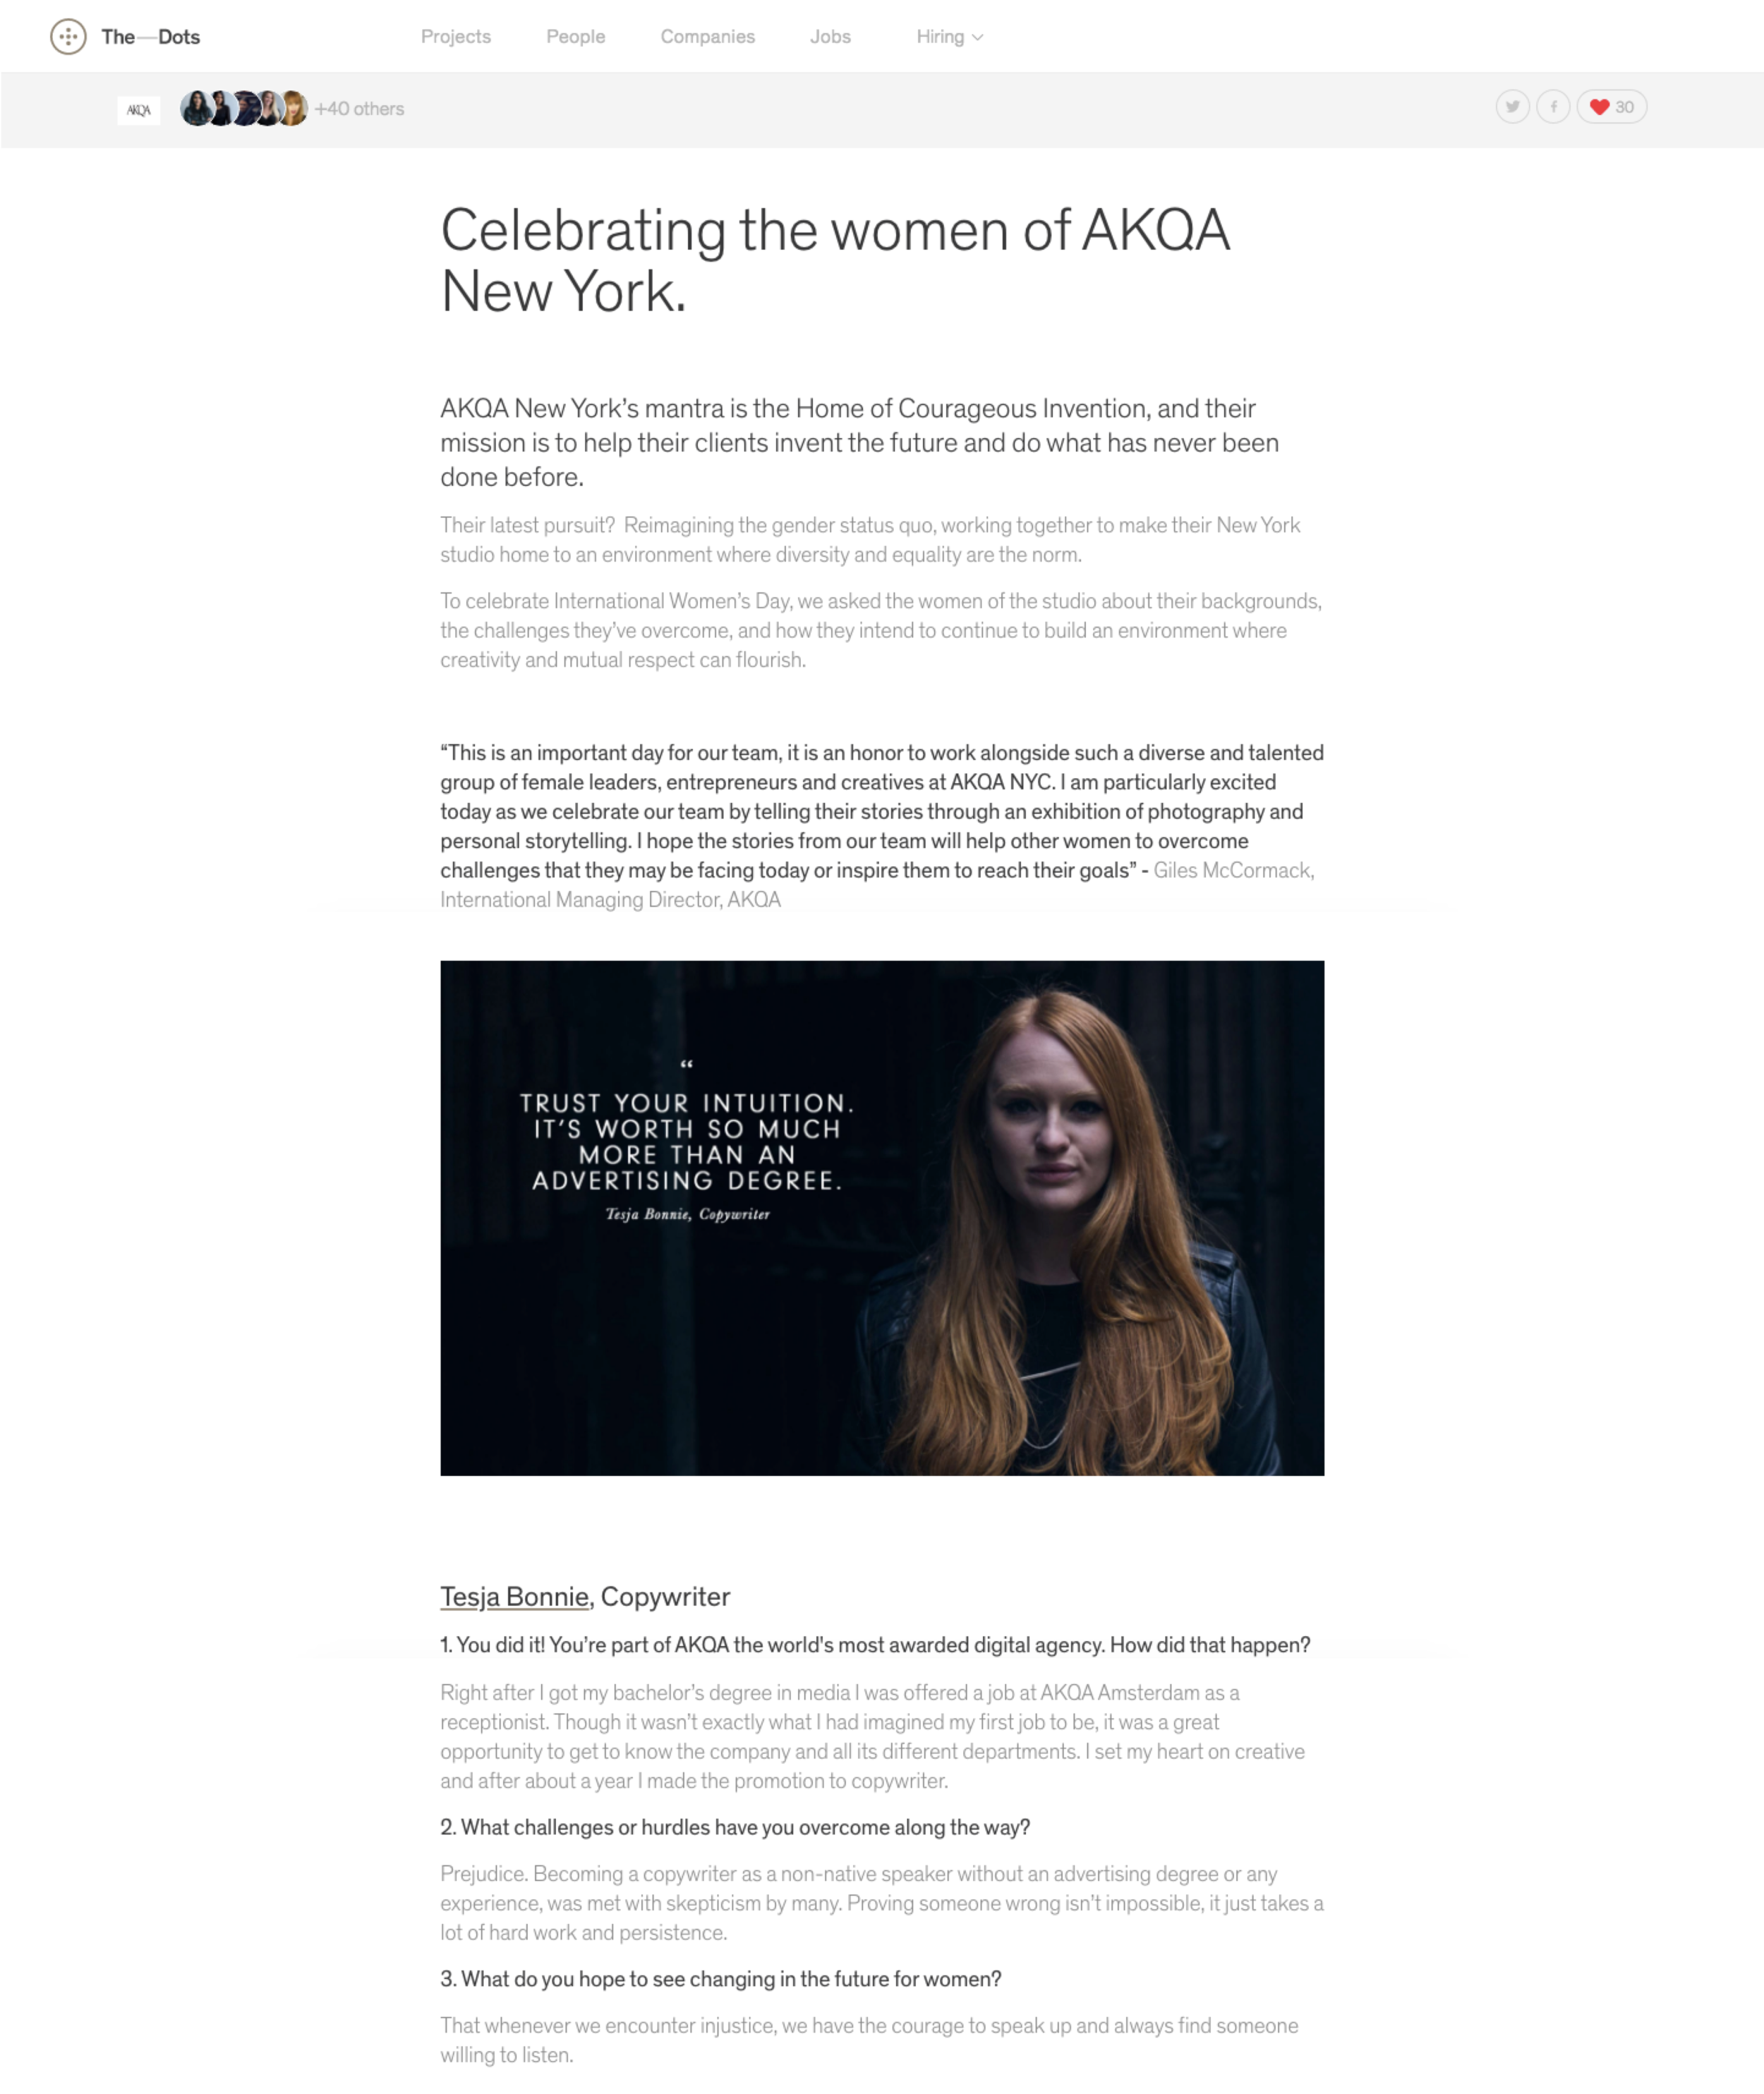 International Women's' Day 2018 feature on The Dots